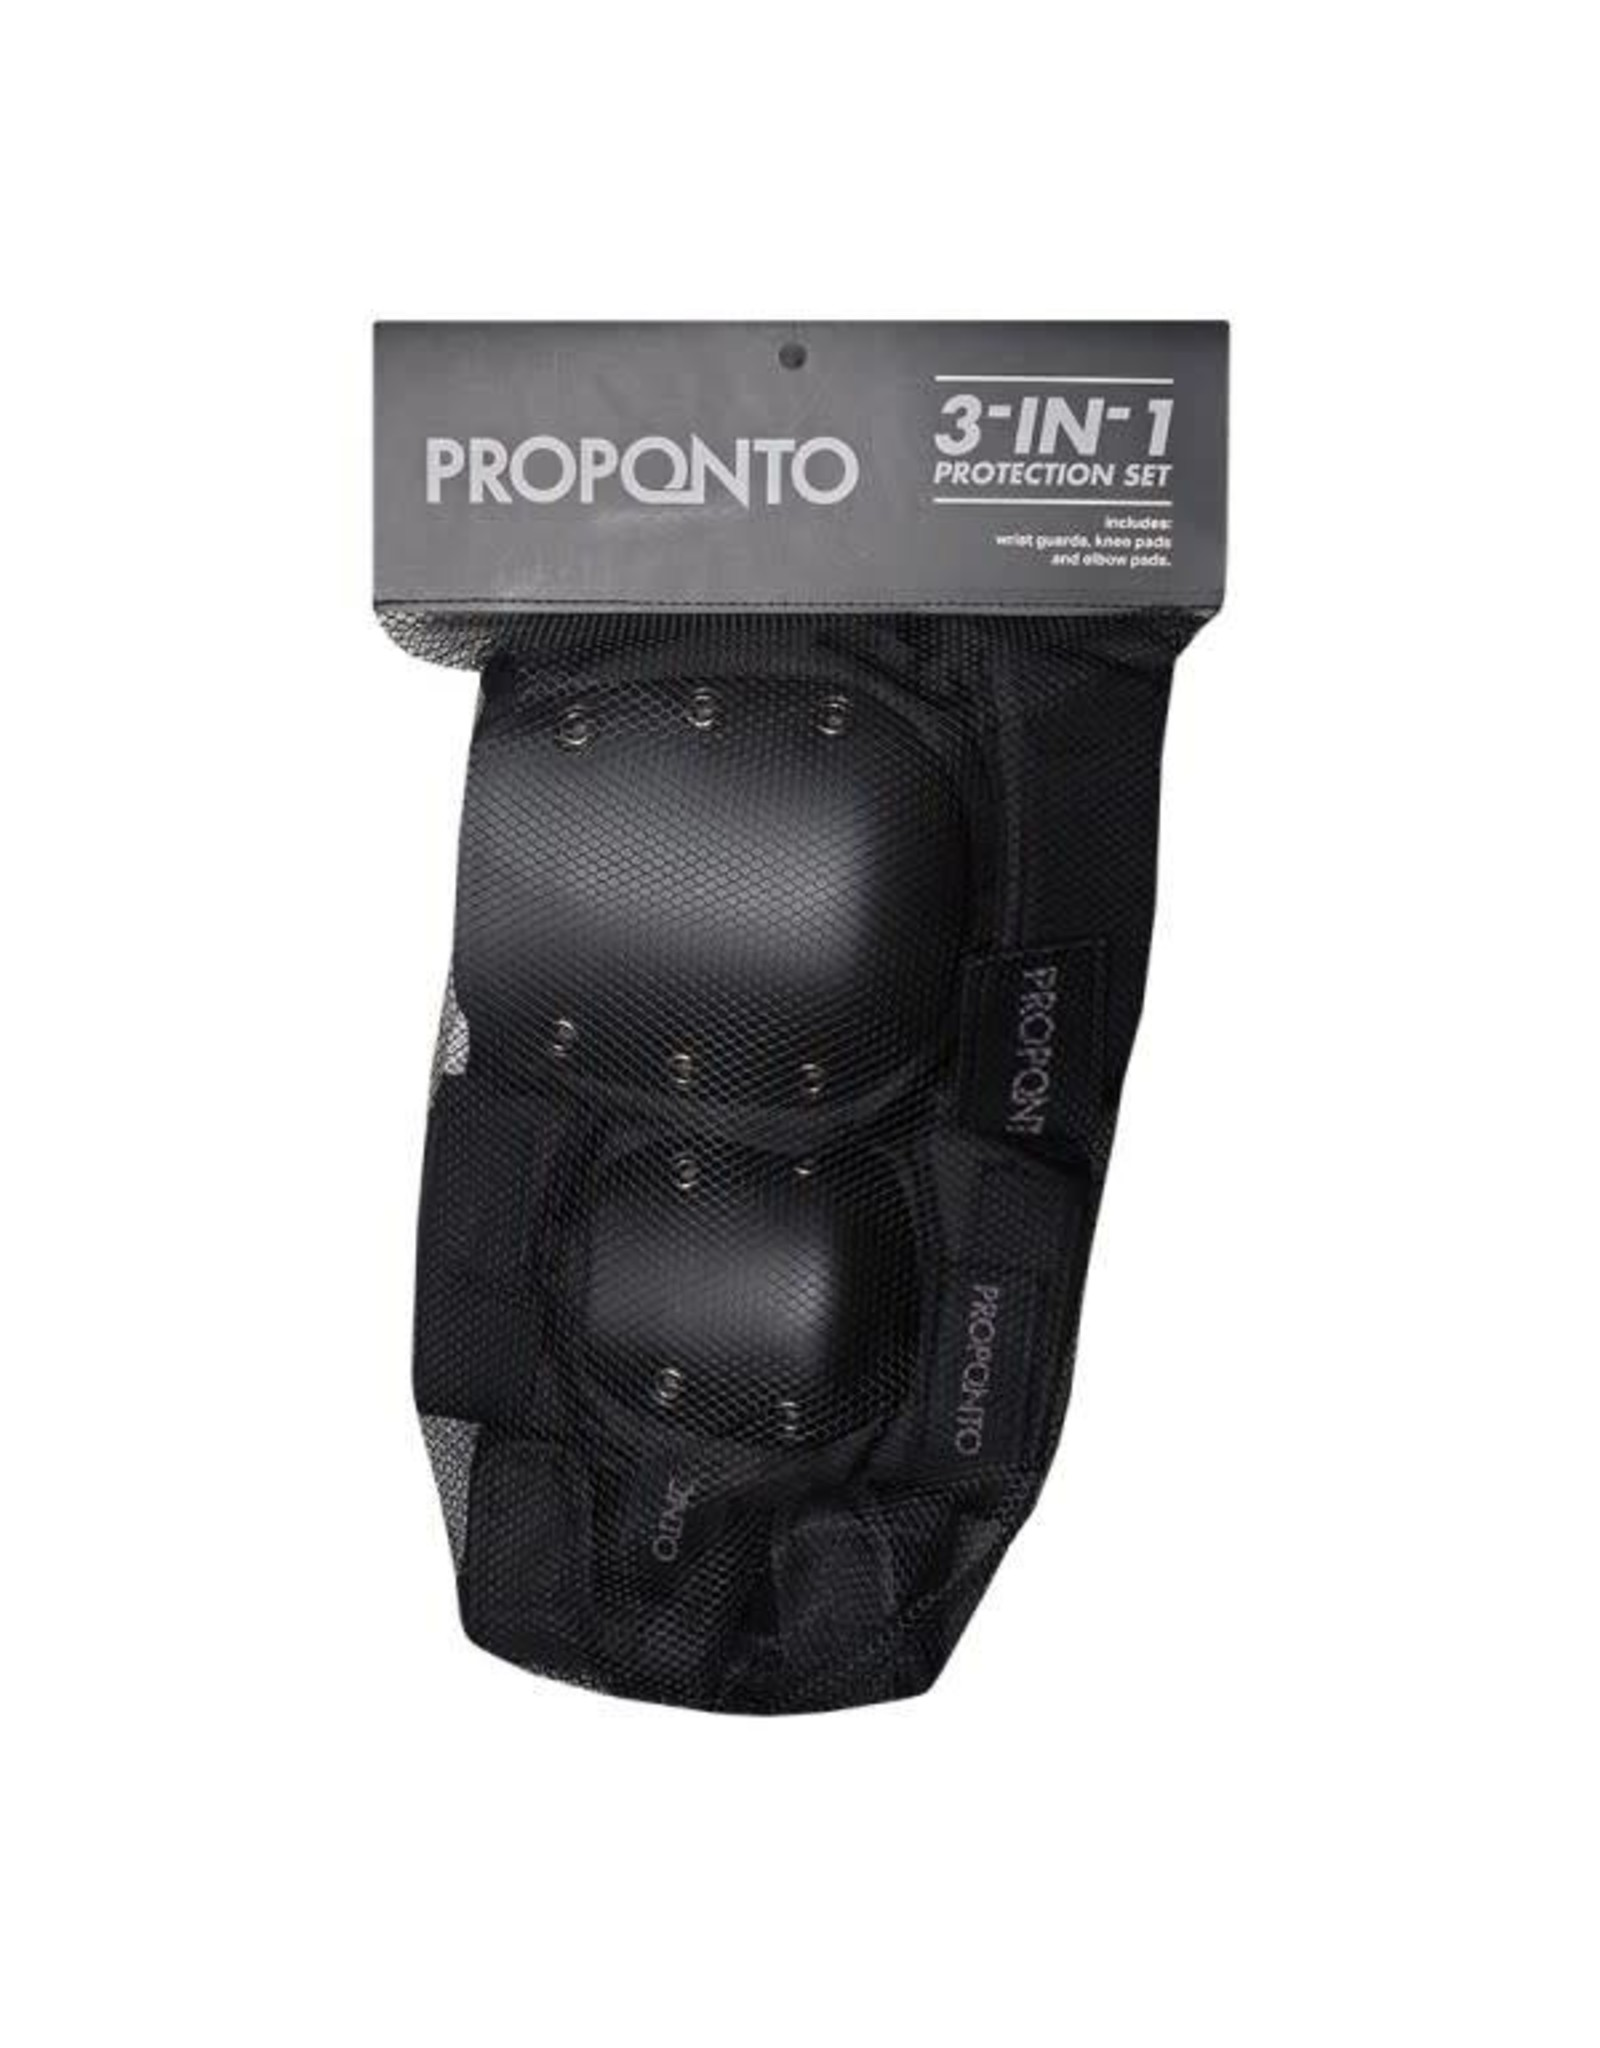 Proponto Proponto 3 in 1 Protection Pads Pack